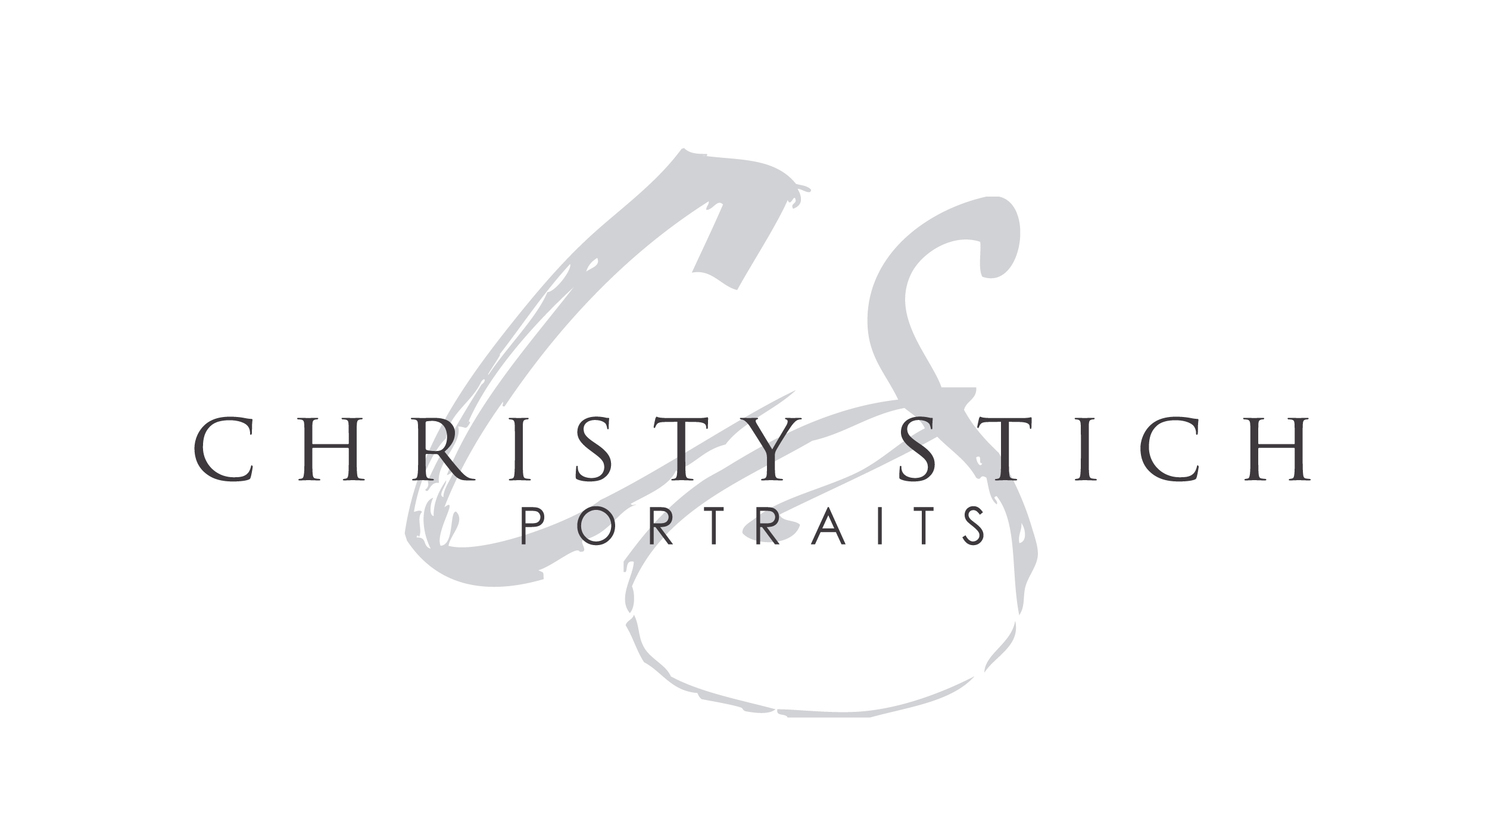 Christy Stich Portraits